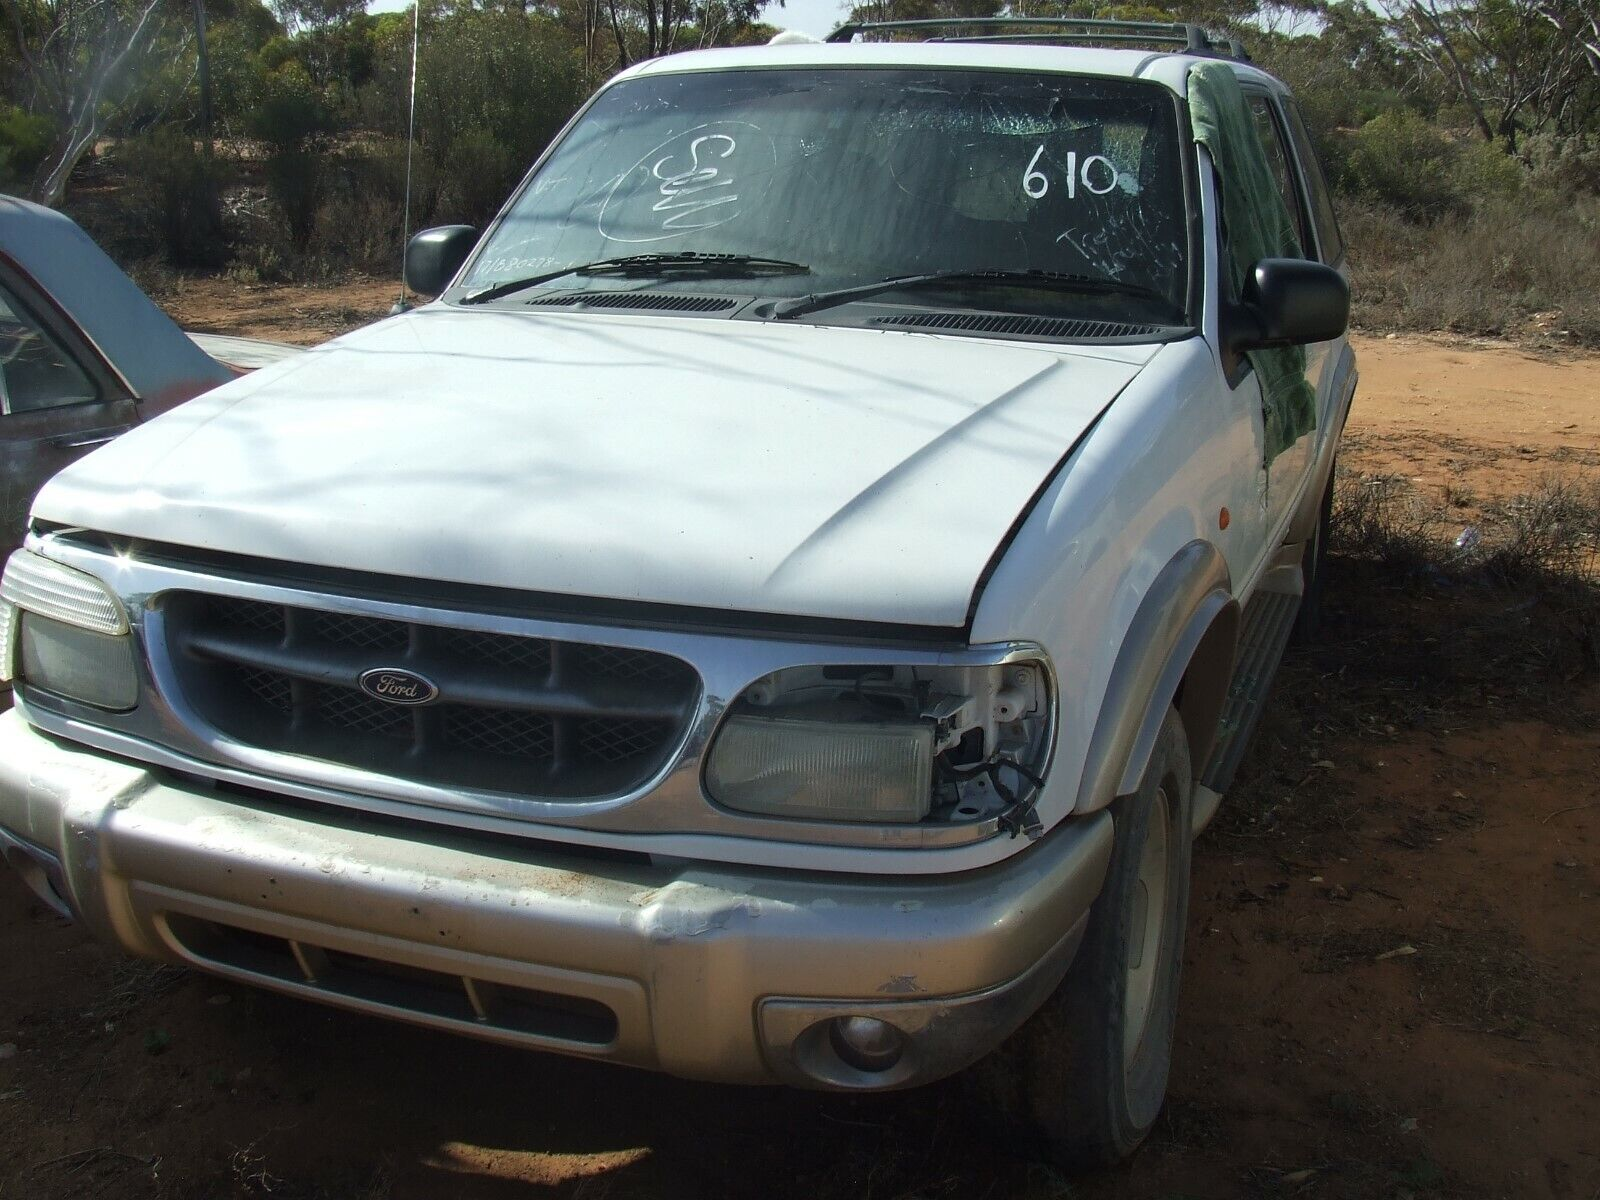 Car Parts - 1998-2000 Ford Explorer wagon 2 complete cars for wrecking all parts available